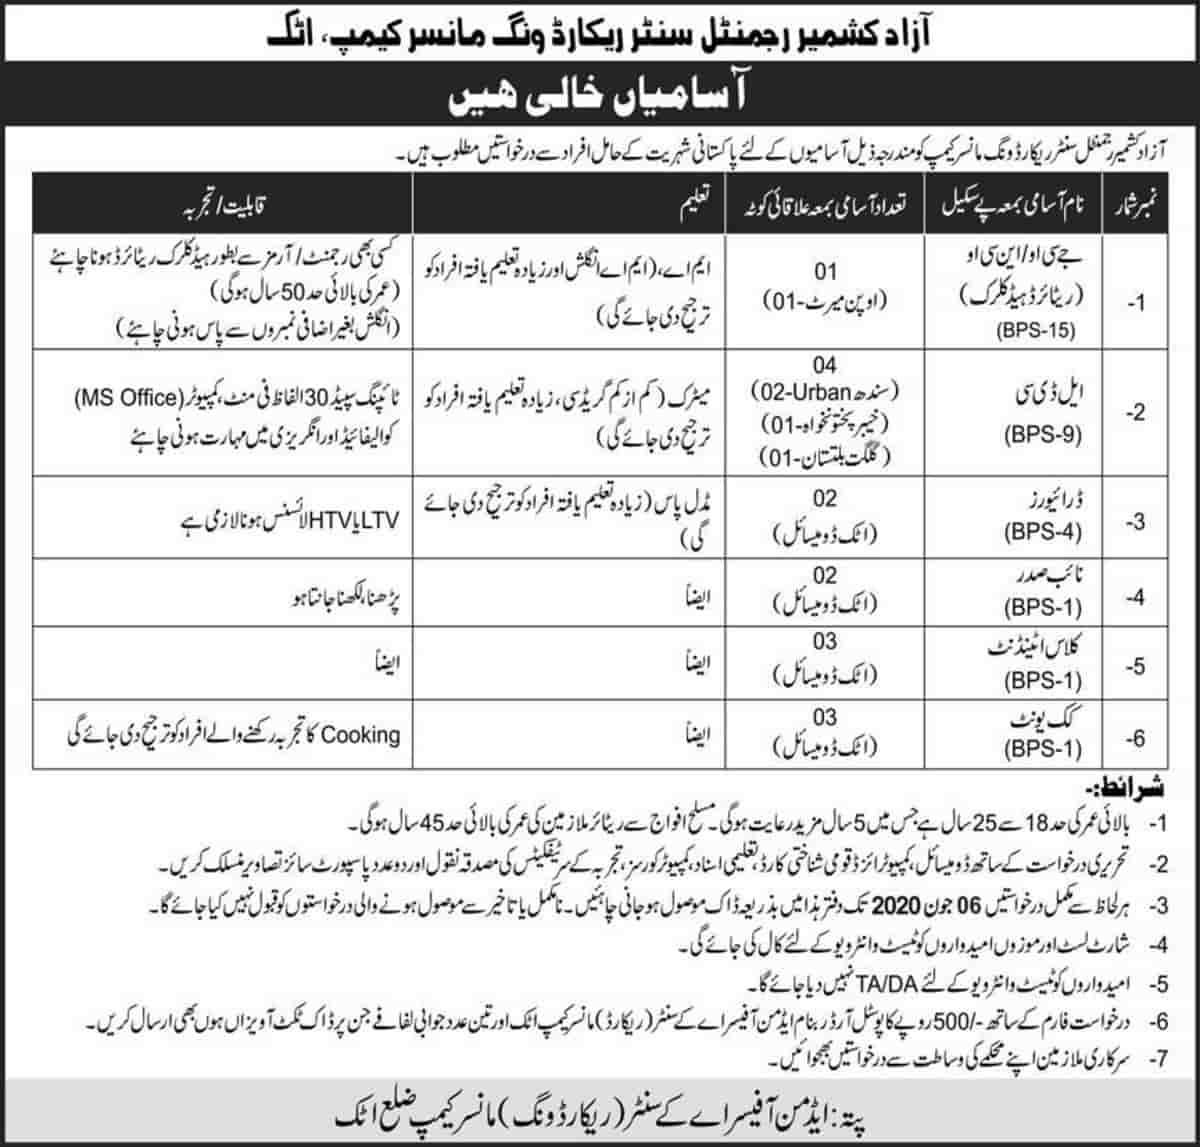 Pakistan Army AJK Regimental Center Record Wing Mansar Camp Attock Jobs 2020